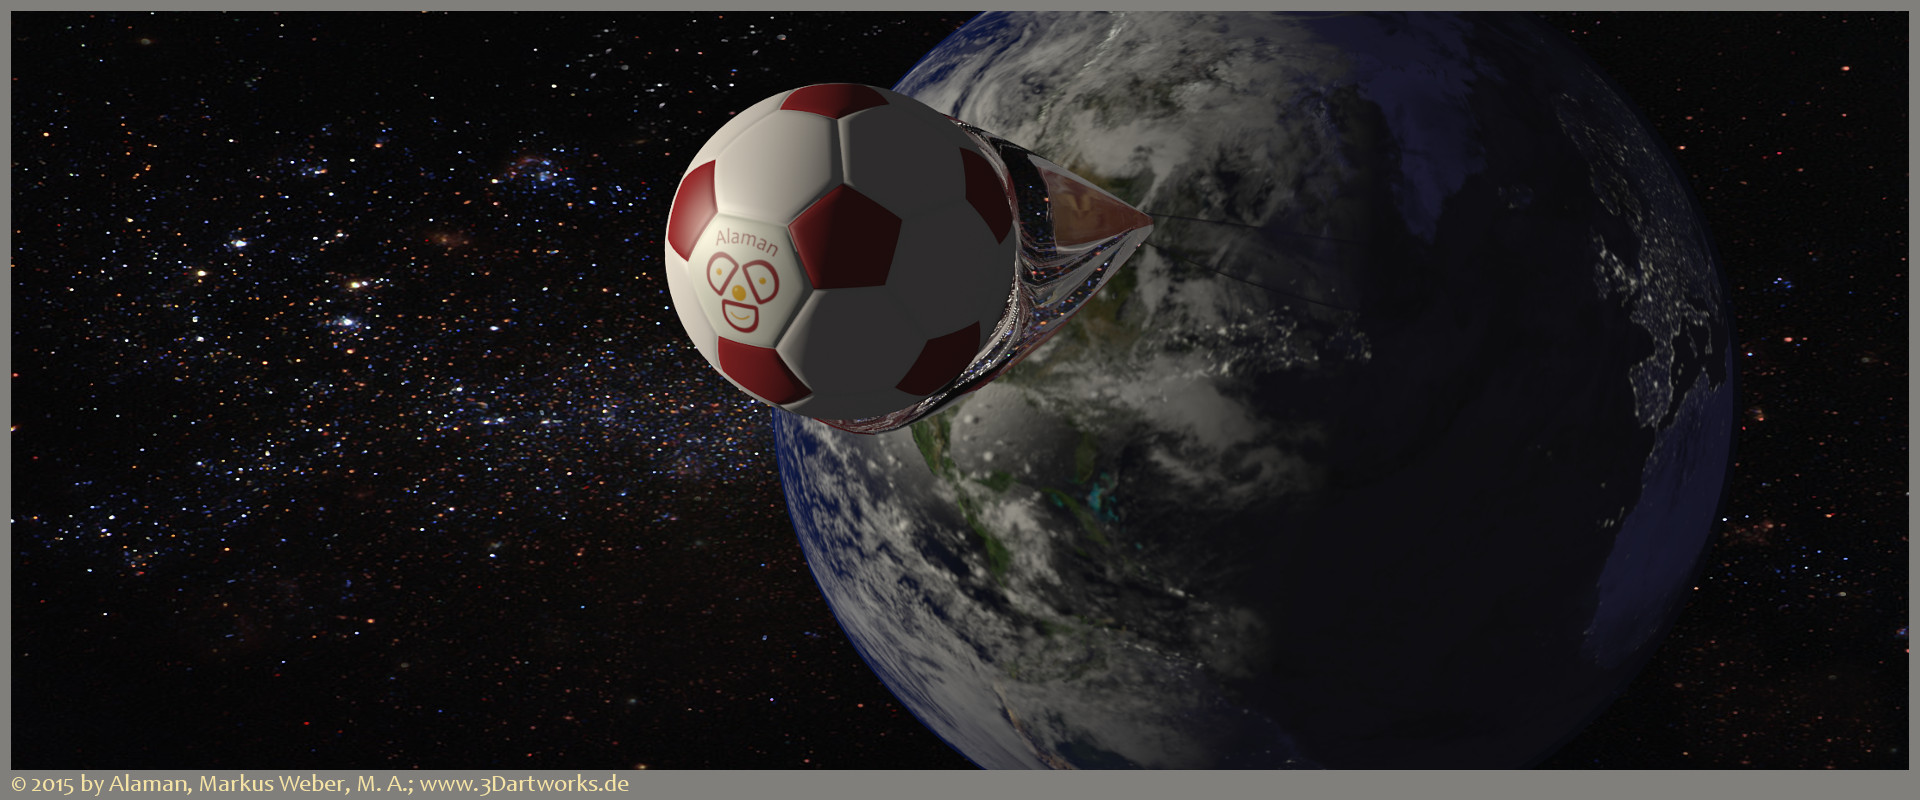 Product visualization: earth and classic football being launched into space from Canada